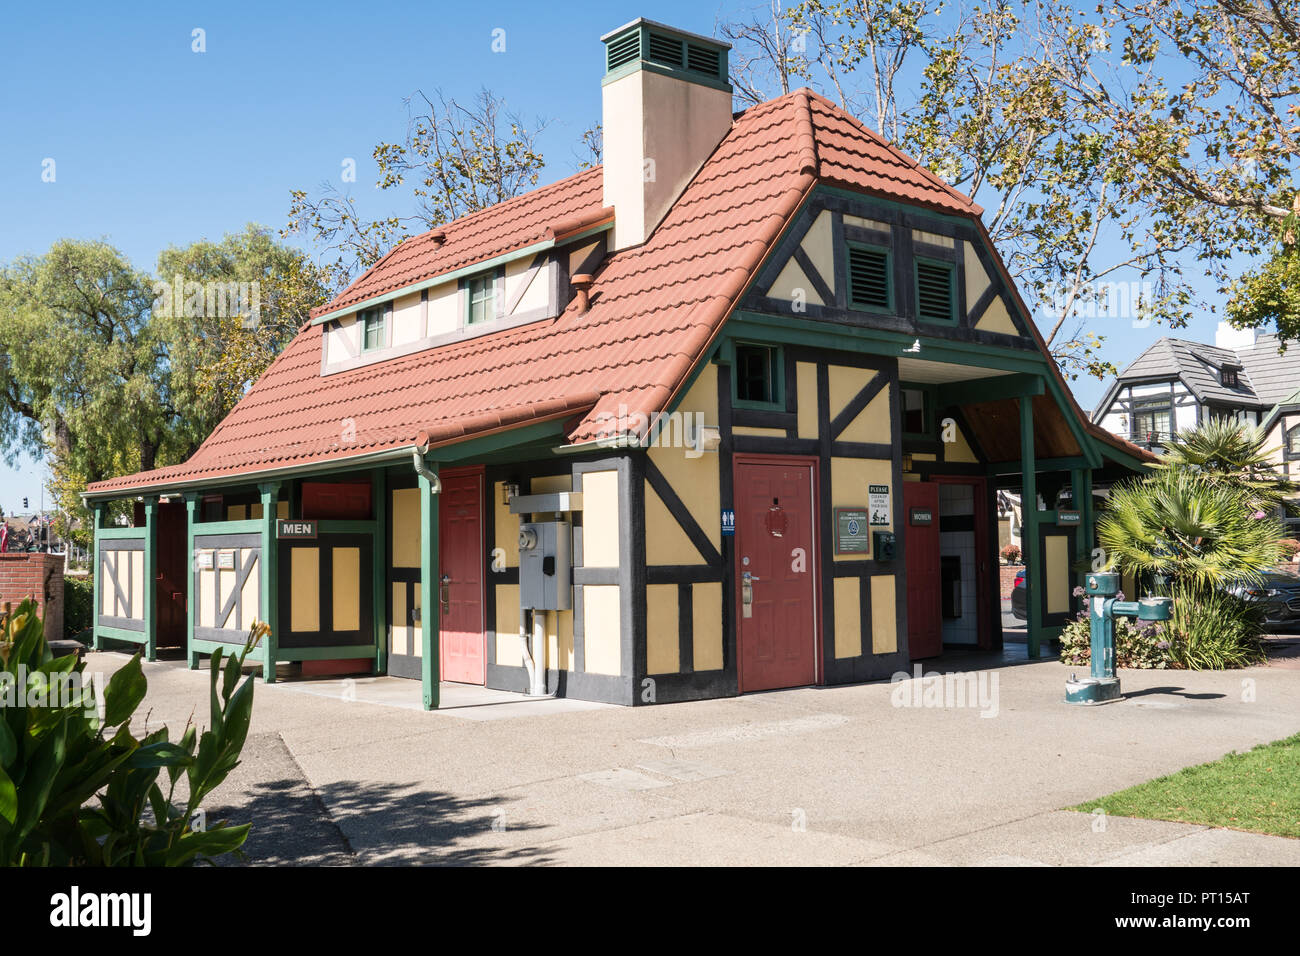 SOLVANG, CA: The public restrooms in Solvang California, a Danish town located in California's Santa Ynez Valley - Stock Image